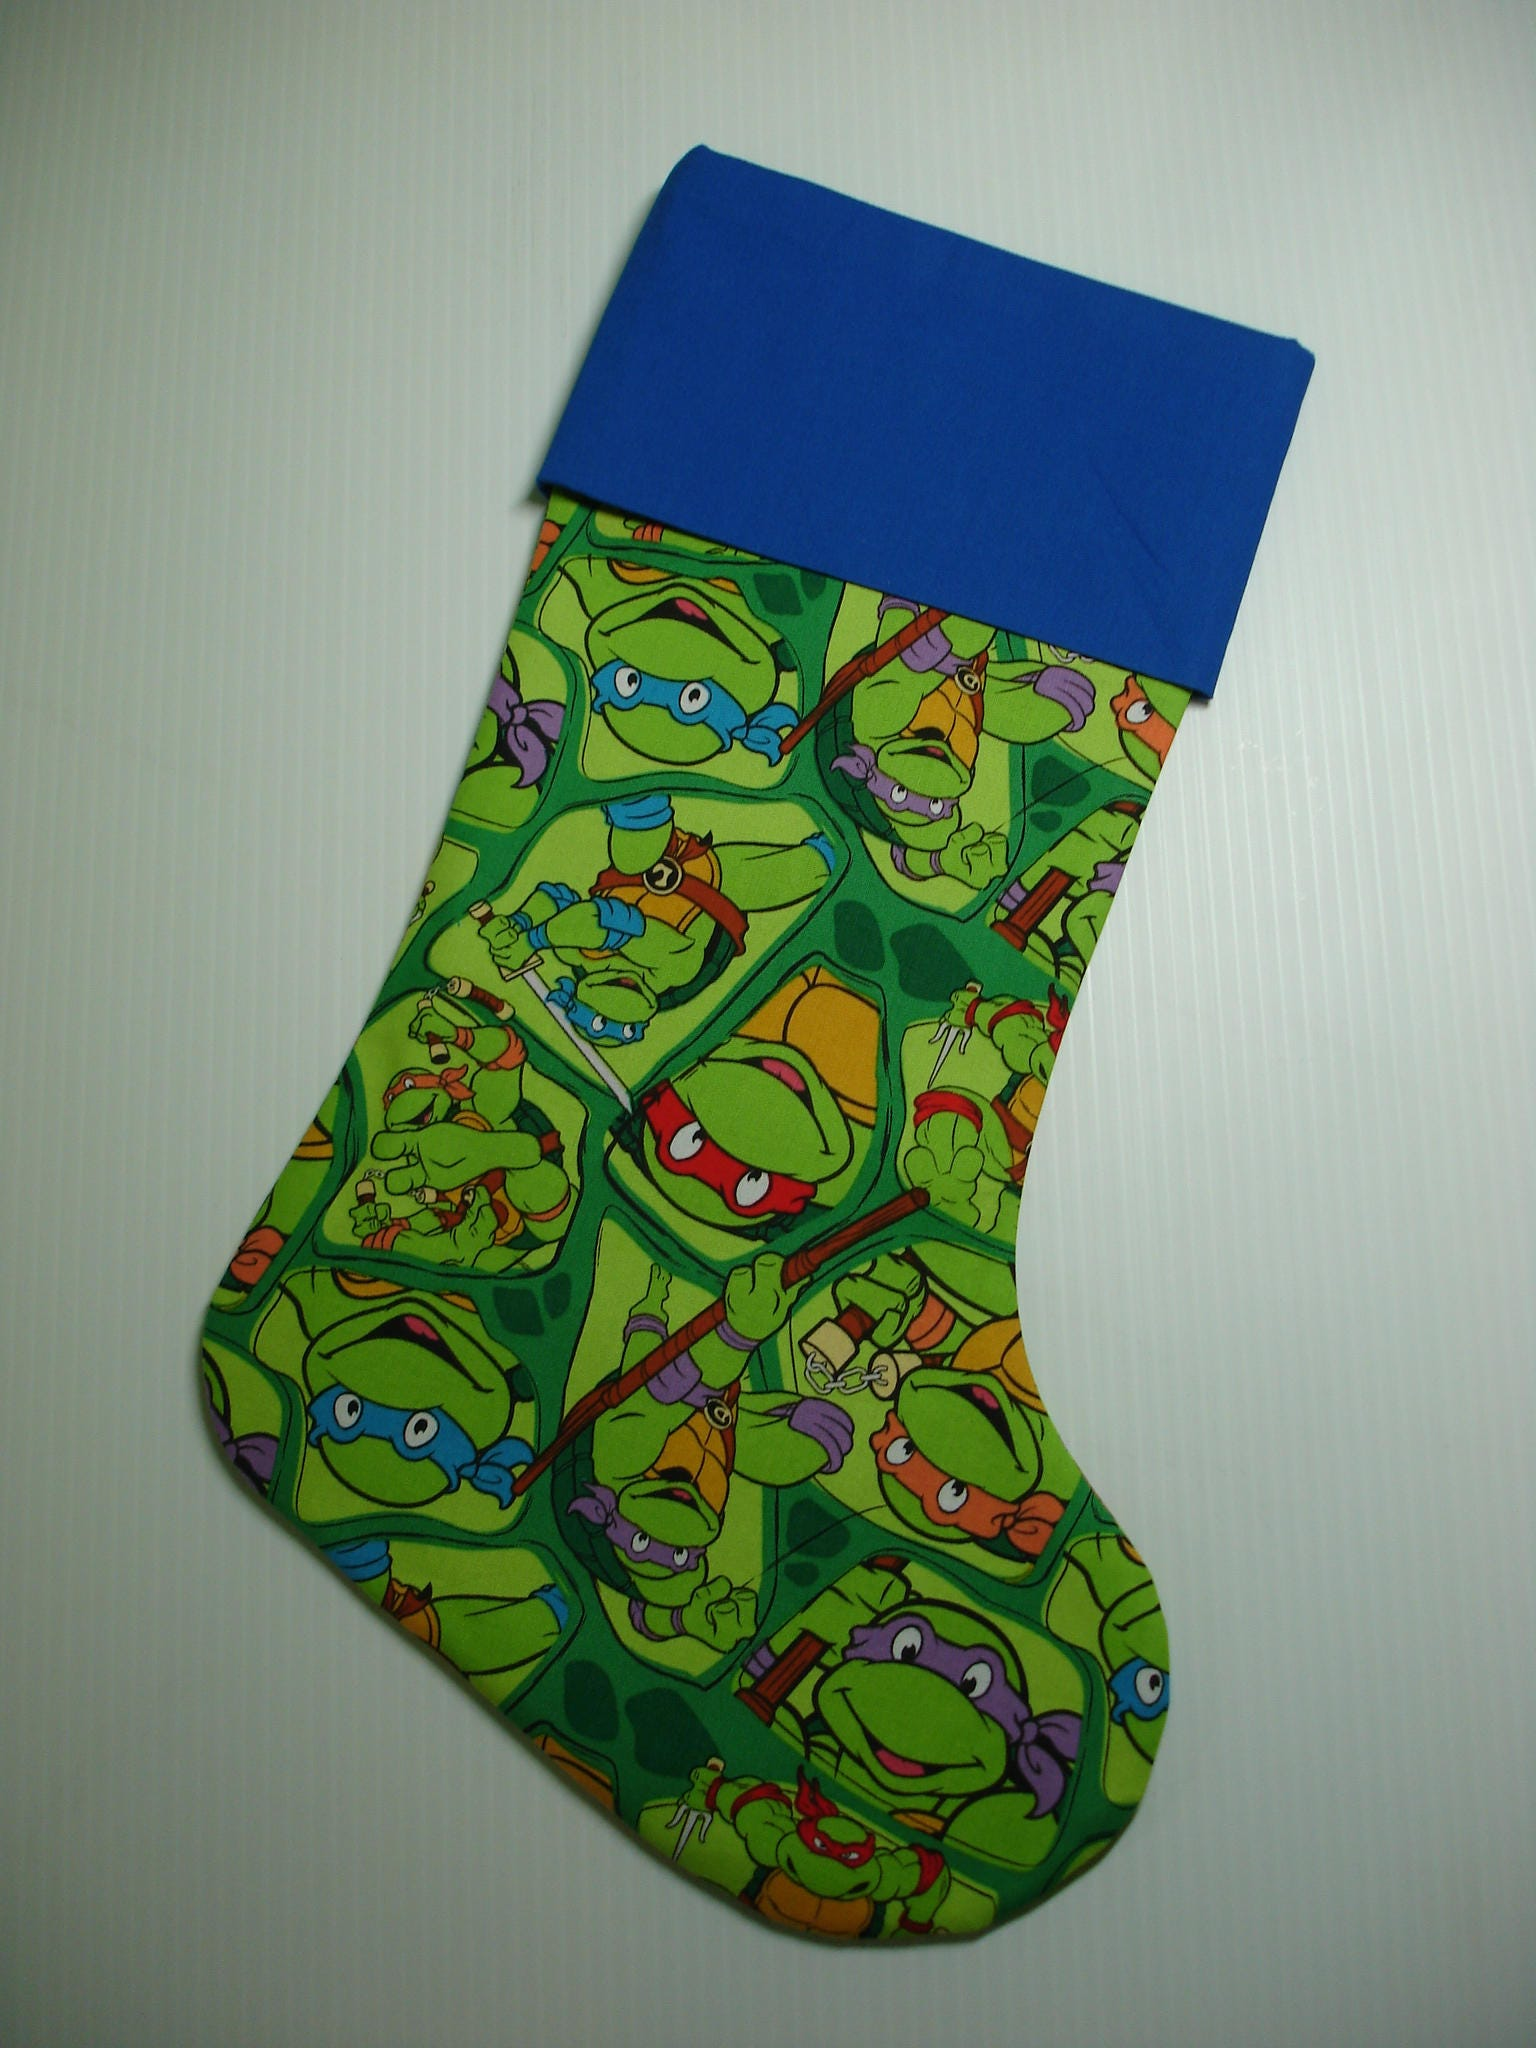 Christmas Stocking Teenage Mutant Ninja Turtles Stocking | Etsy